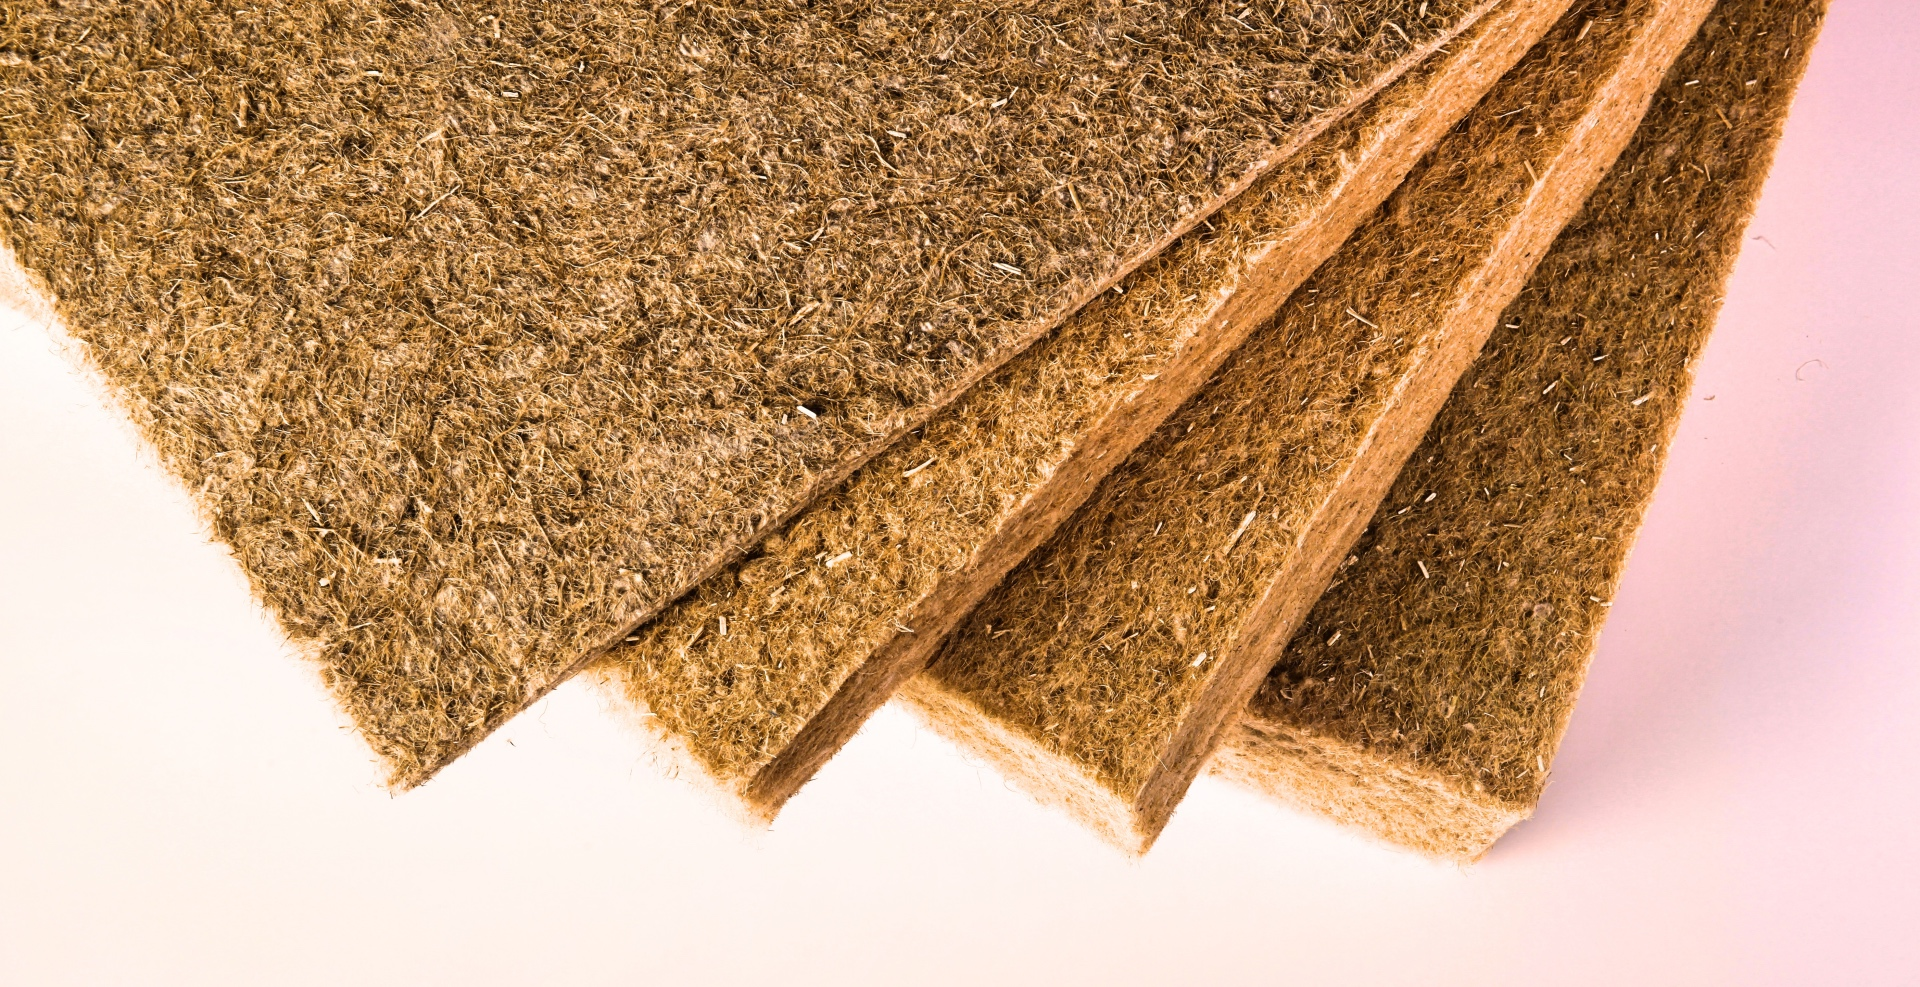 KOBE ECO HEMP FLEX product from natural hemp fibres - KOBE-cz s.r.o.